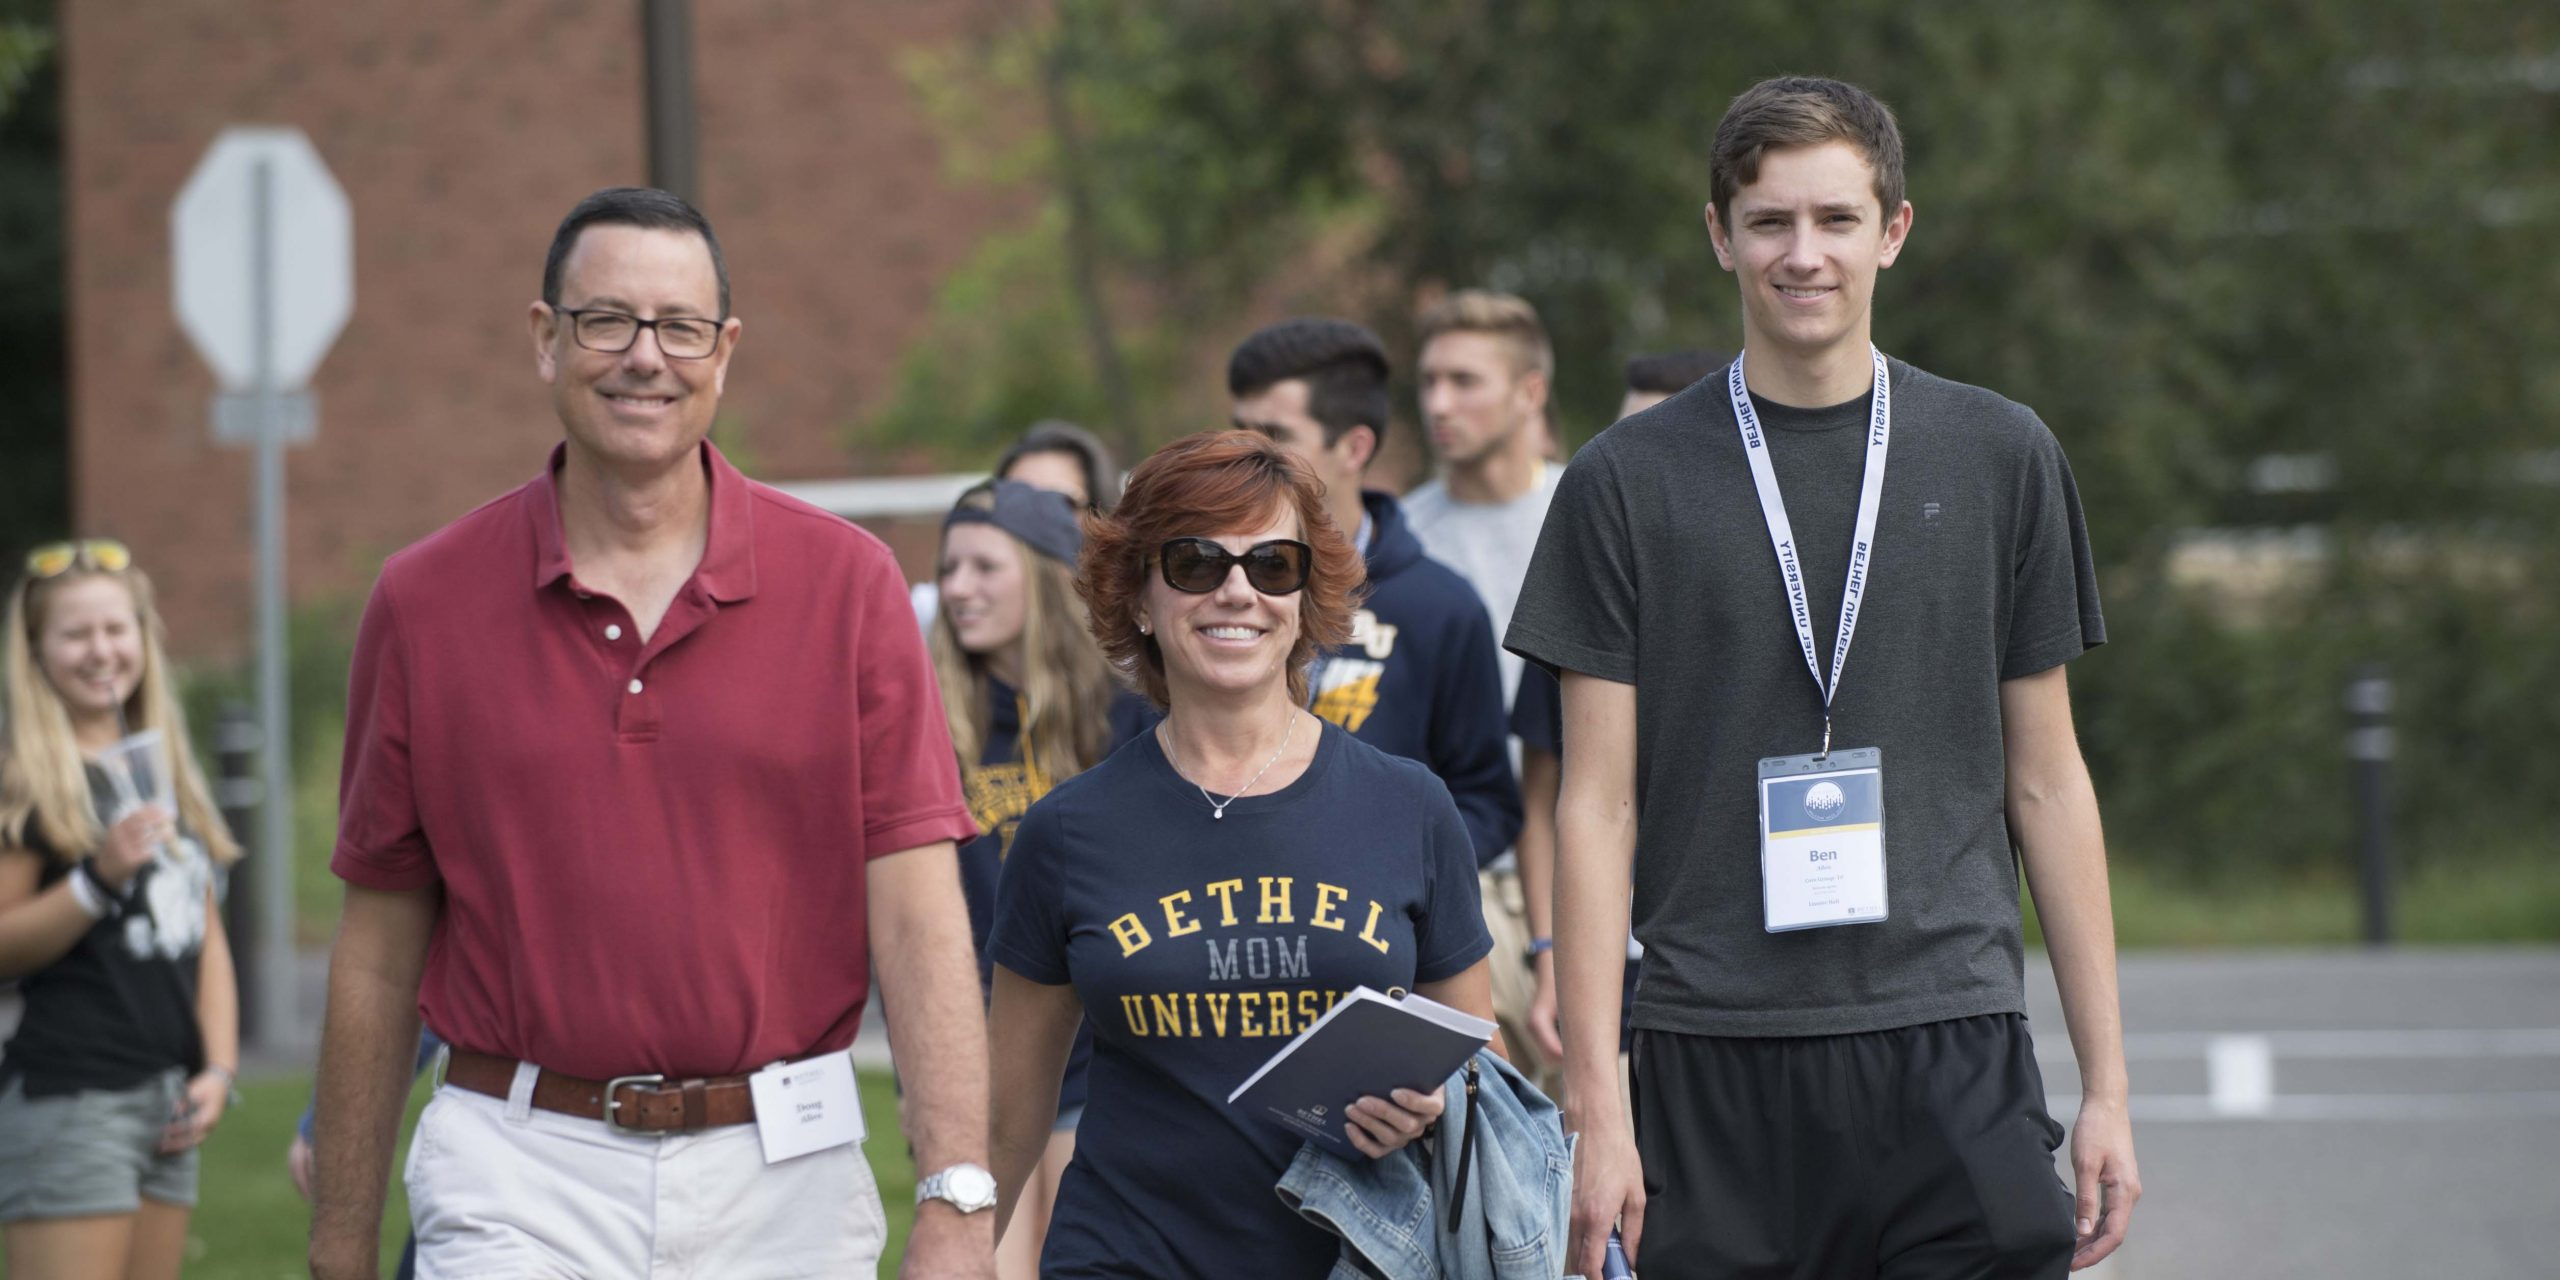 Parents with student at Bethel University